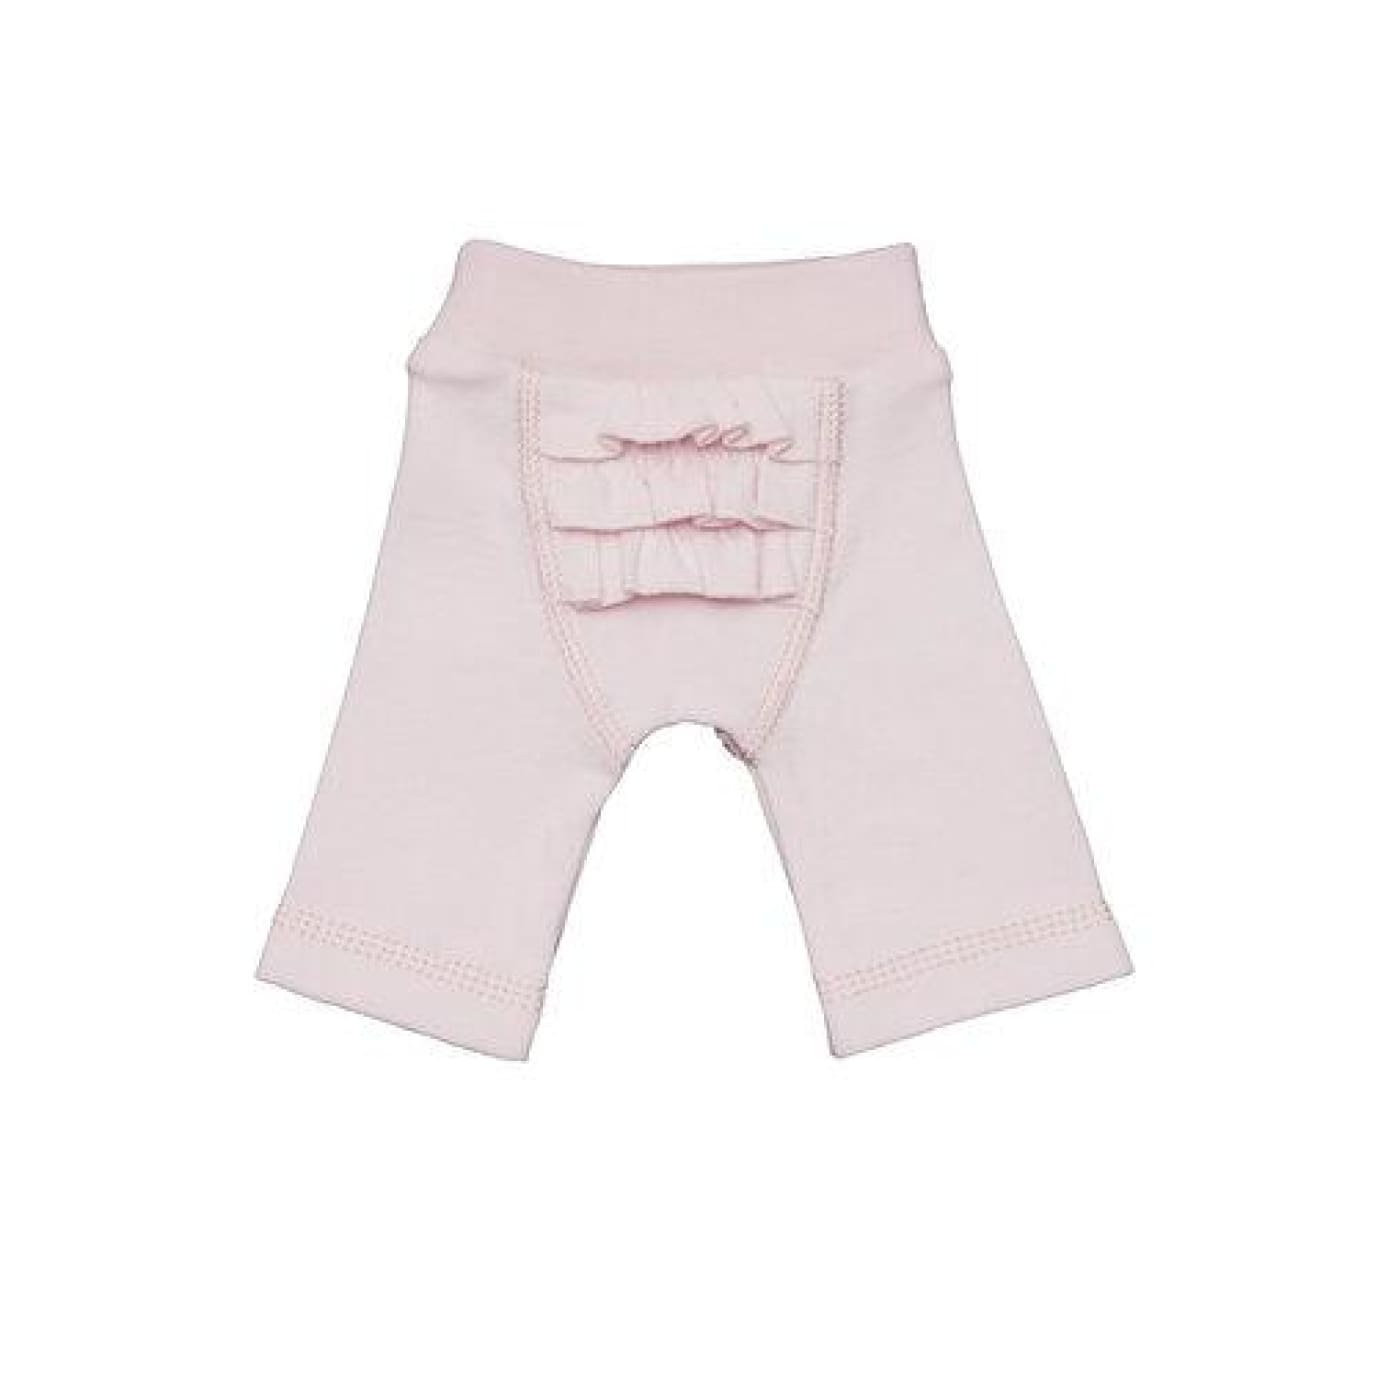 Earlybirds Pants - Pink M - BABY & TODDLER CLOTHING - BODYSUITS/SETS/MIX-MATCH